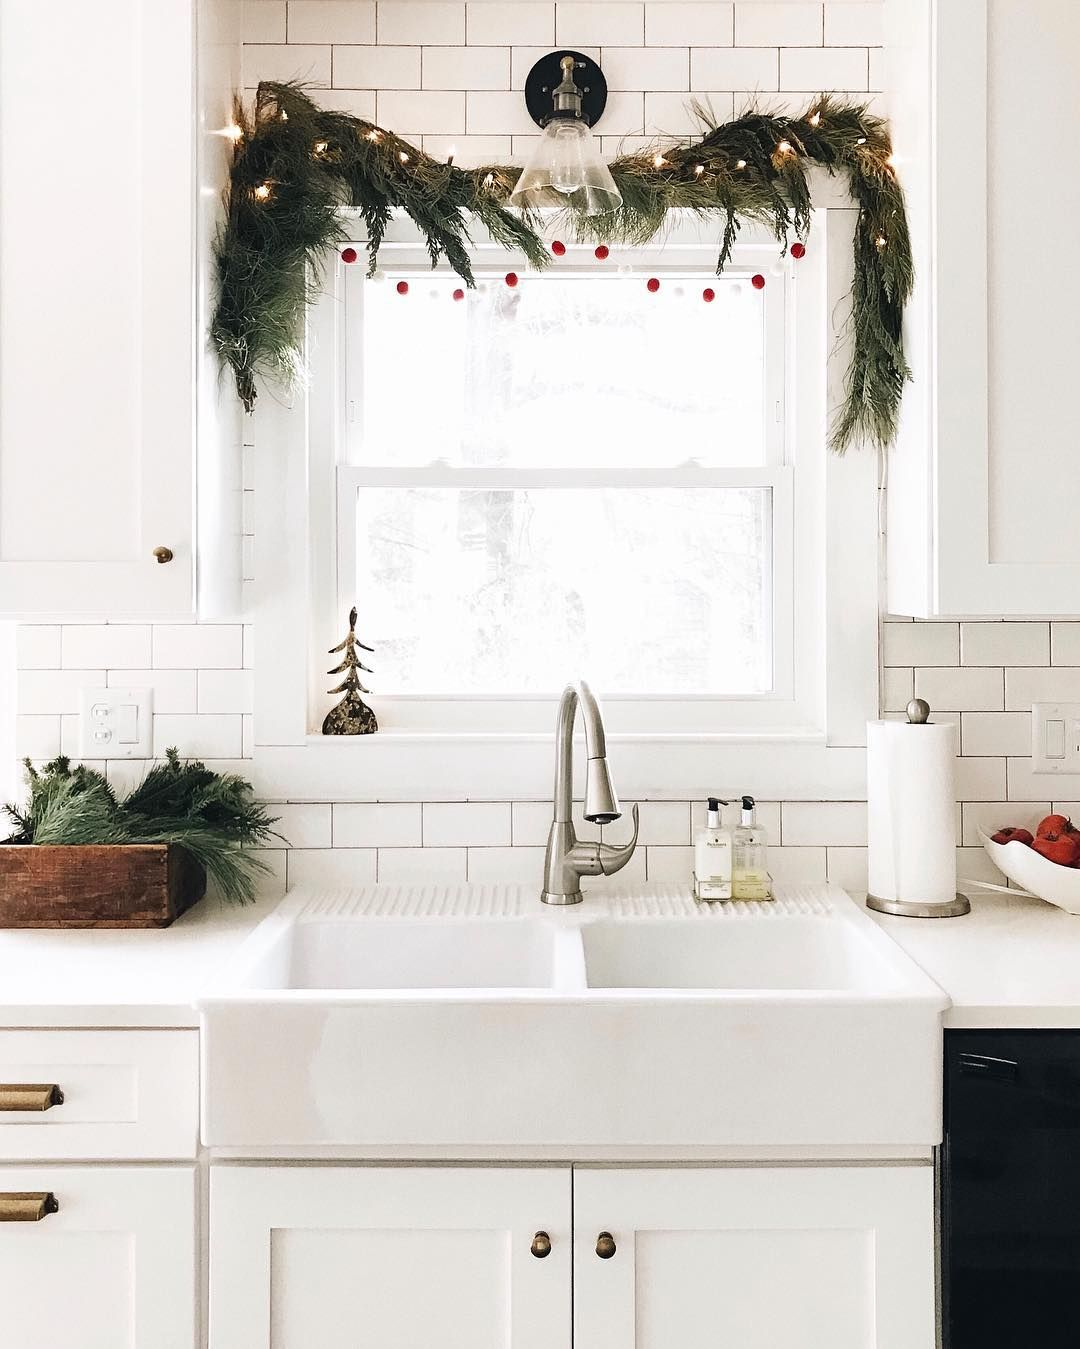 Window treatment ideas for above kitchen sink  how to affordably decorate every room for the holidays  ma future